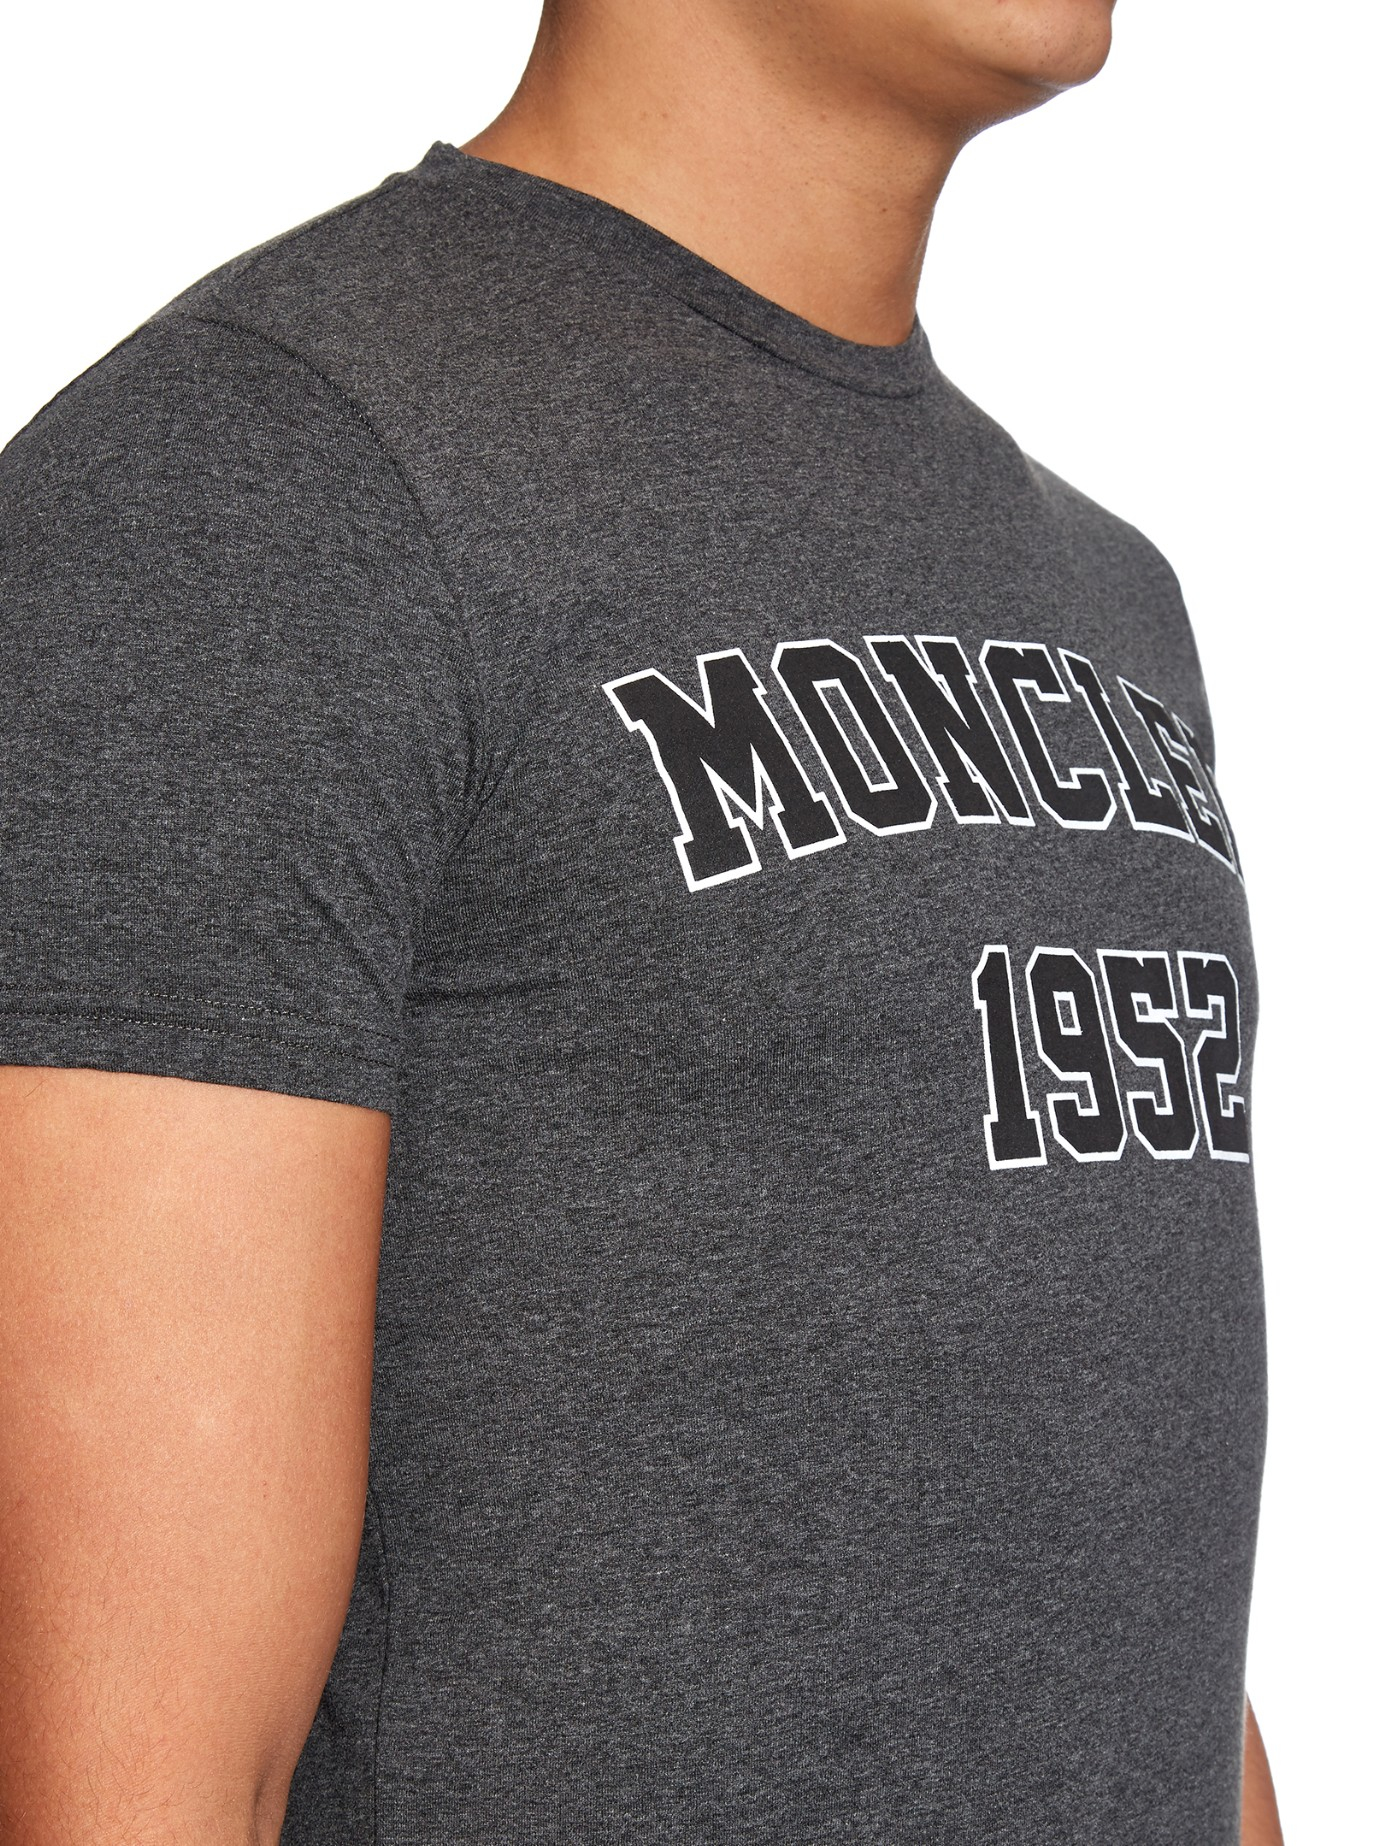 moncler 1952 logo print jersey t shirt in gray for men lyst. Black Bedroom Furniture Sets. Home Design Ideas